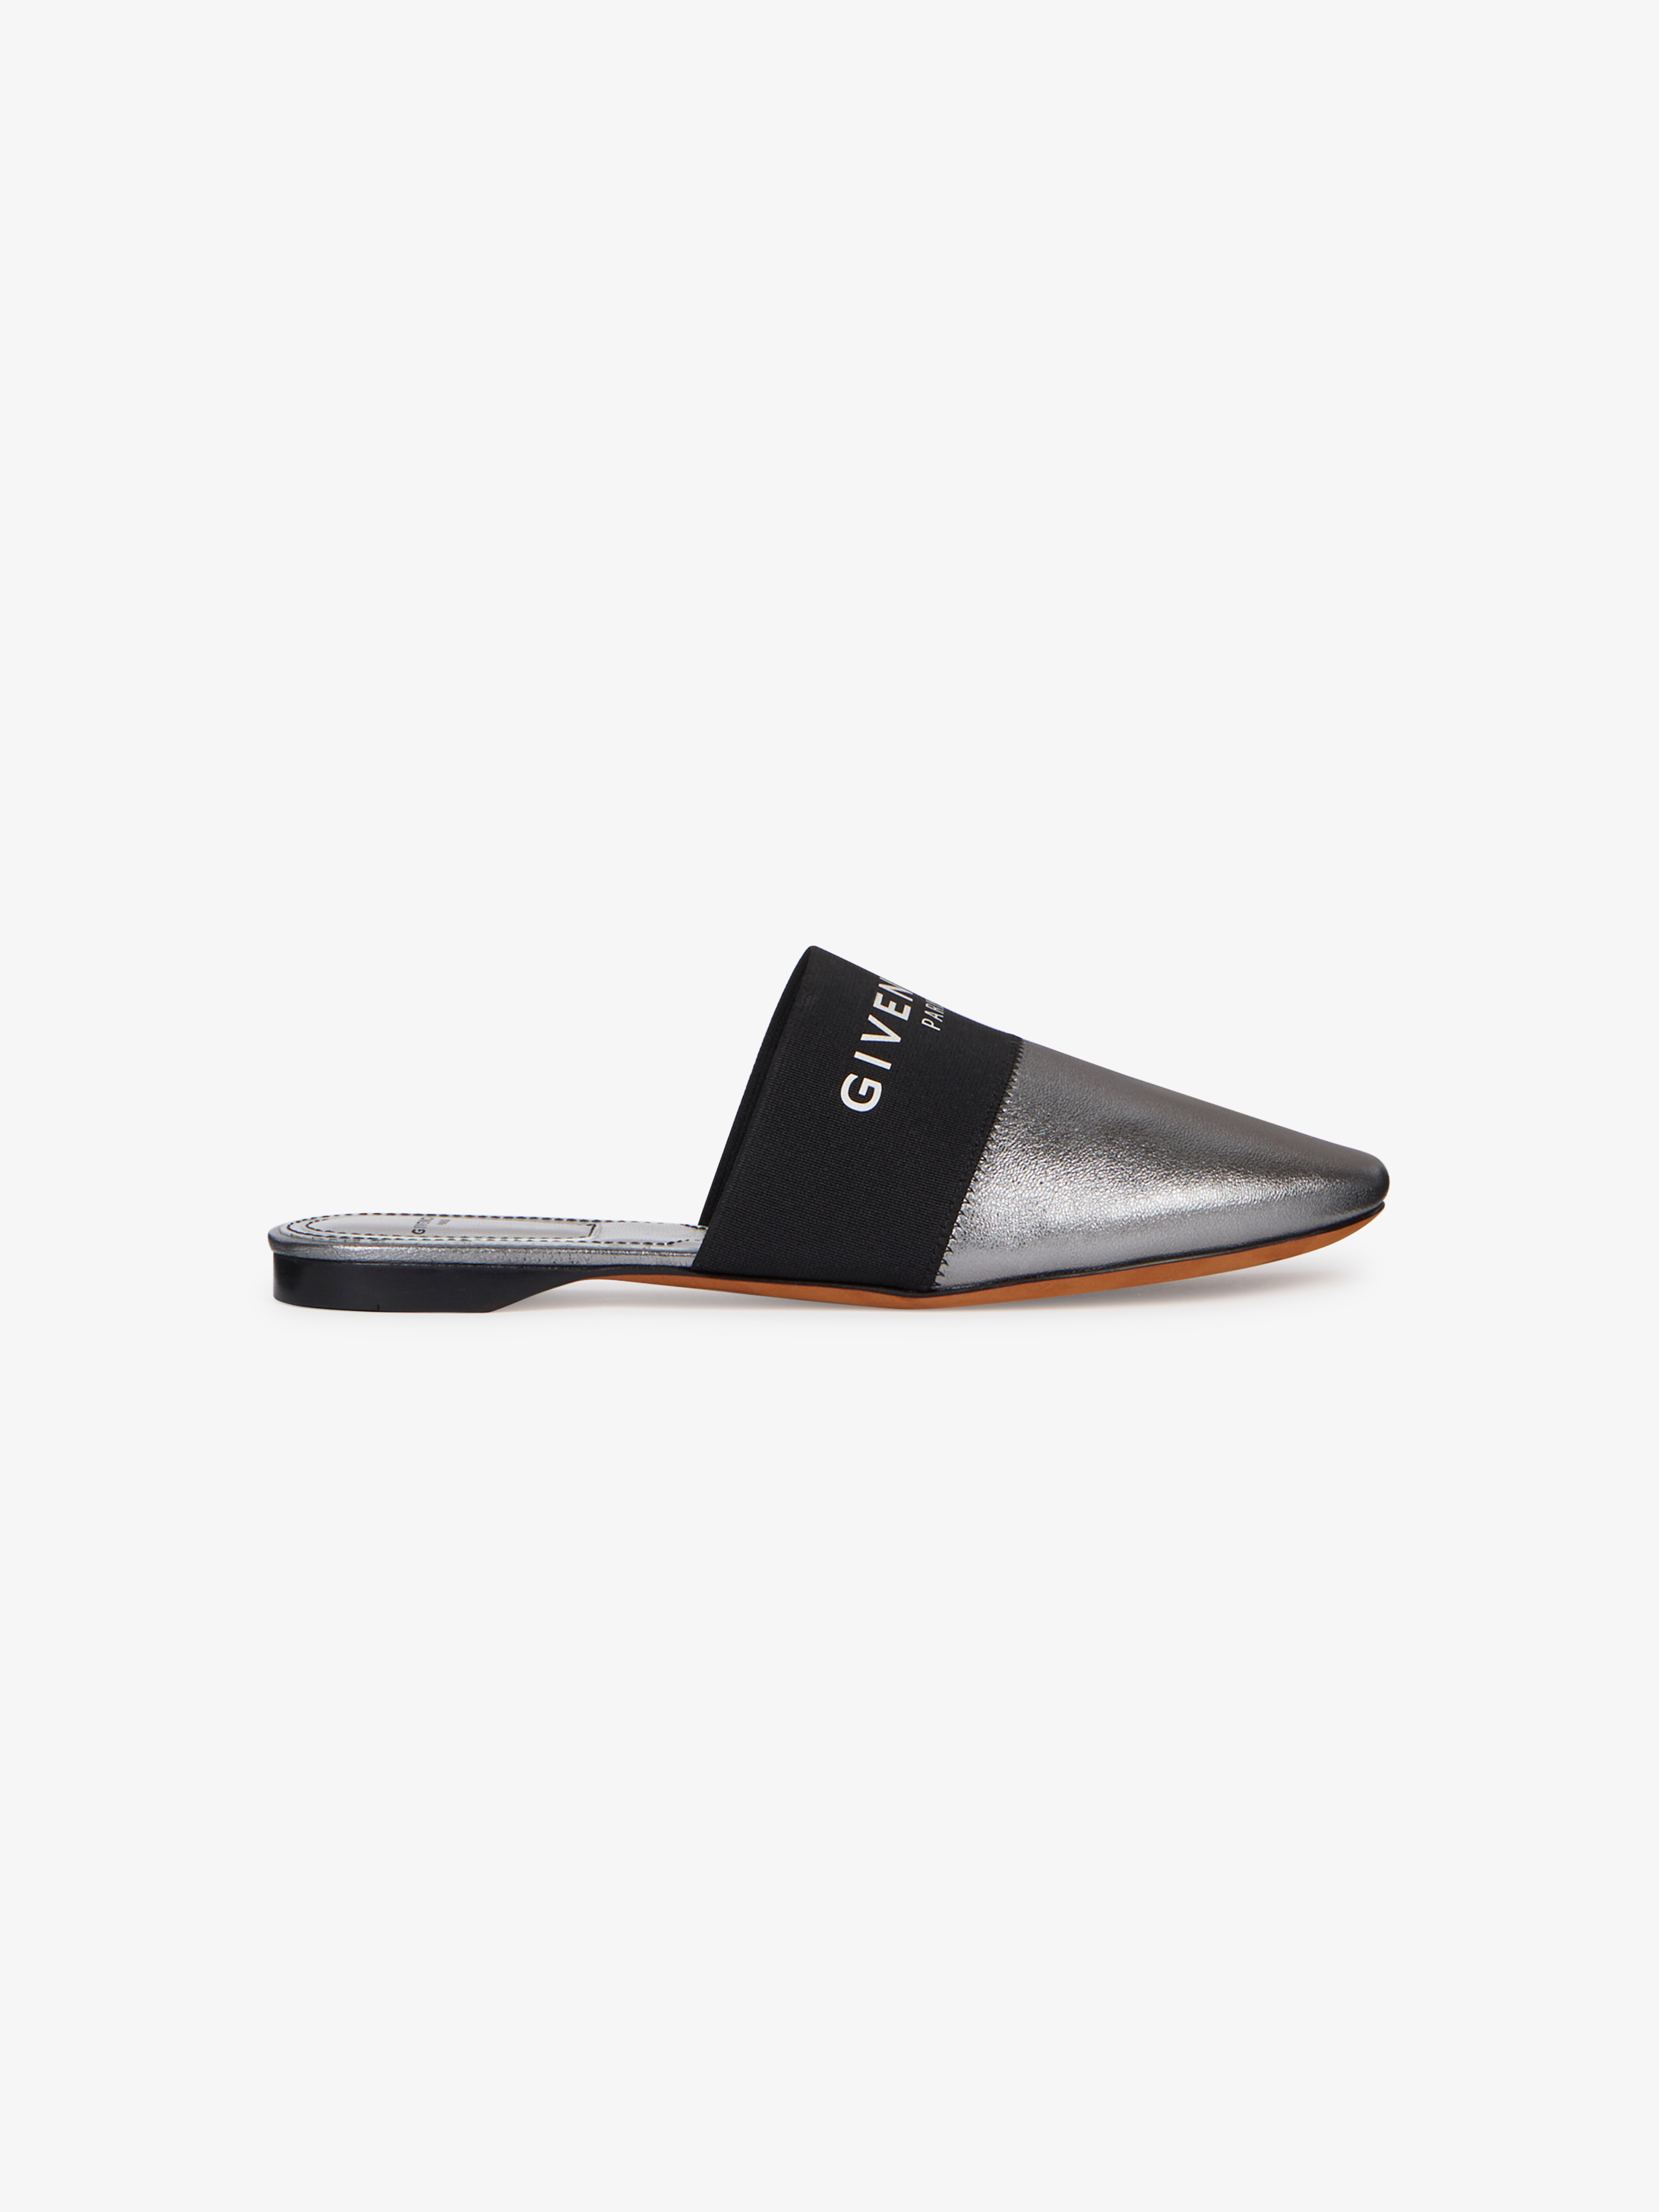 GIVENCHY PARIS flat mules in metallic leather